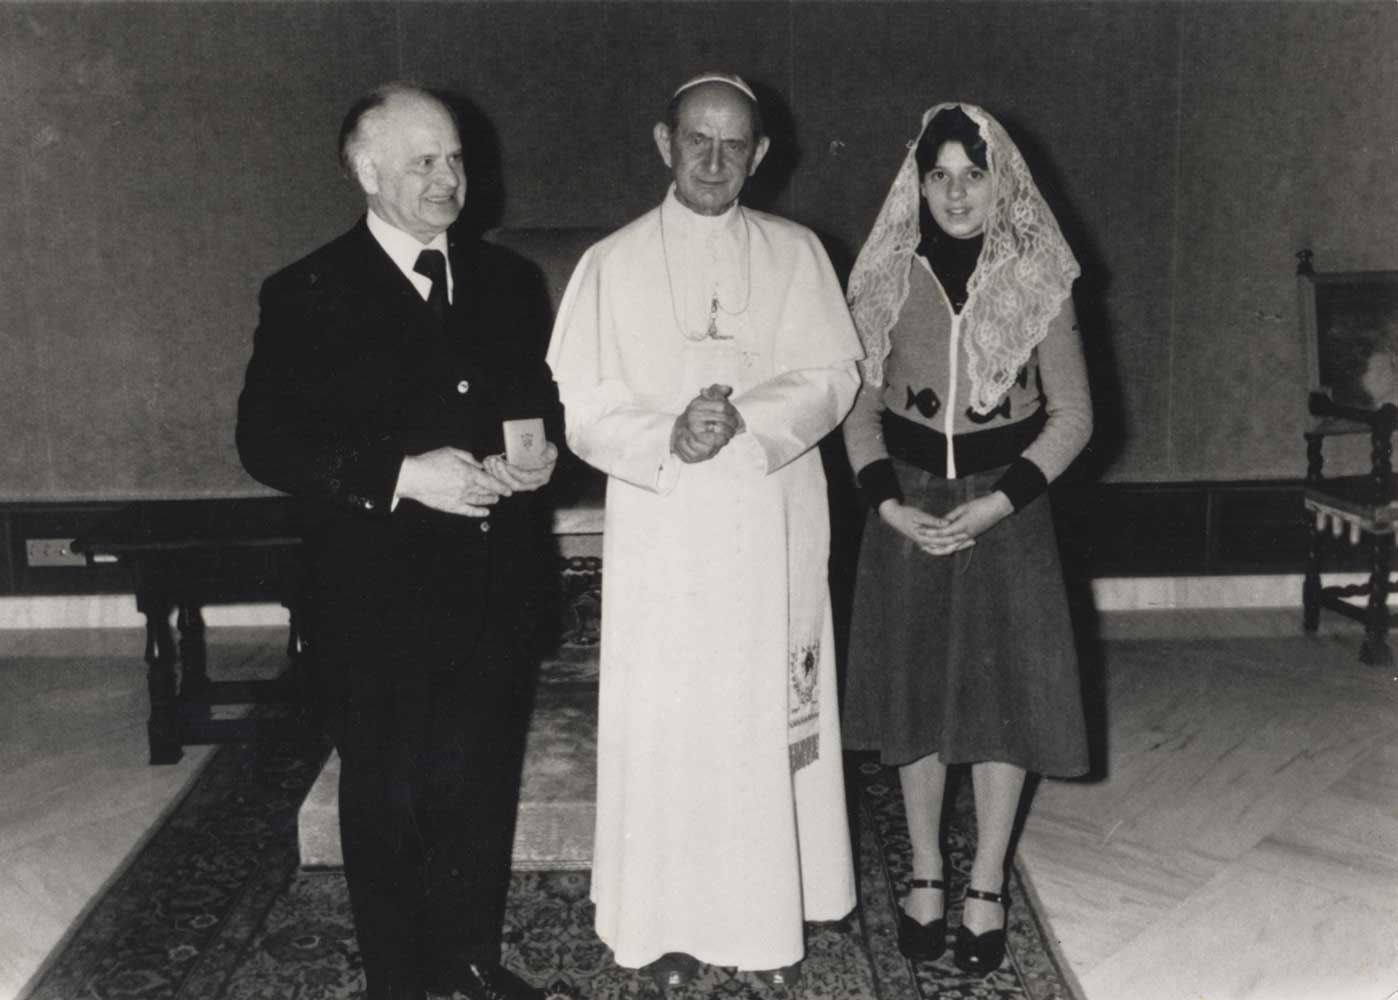 Audience with the Pope - 1